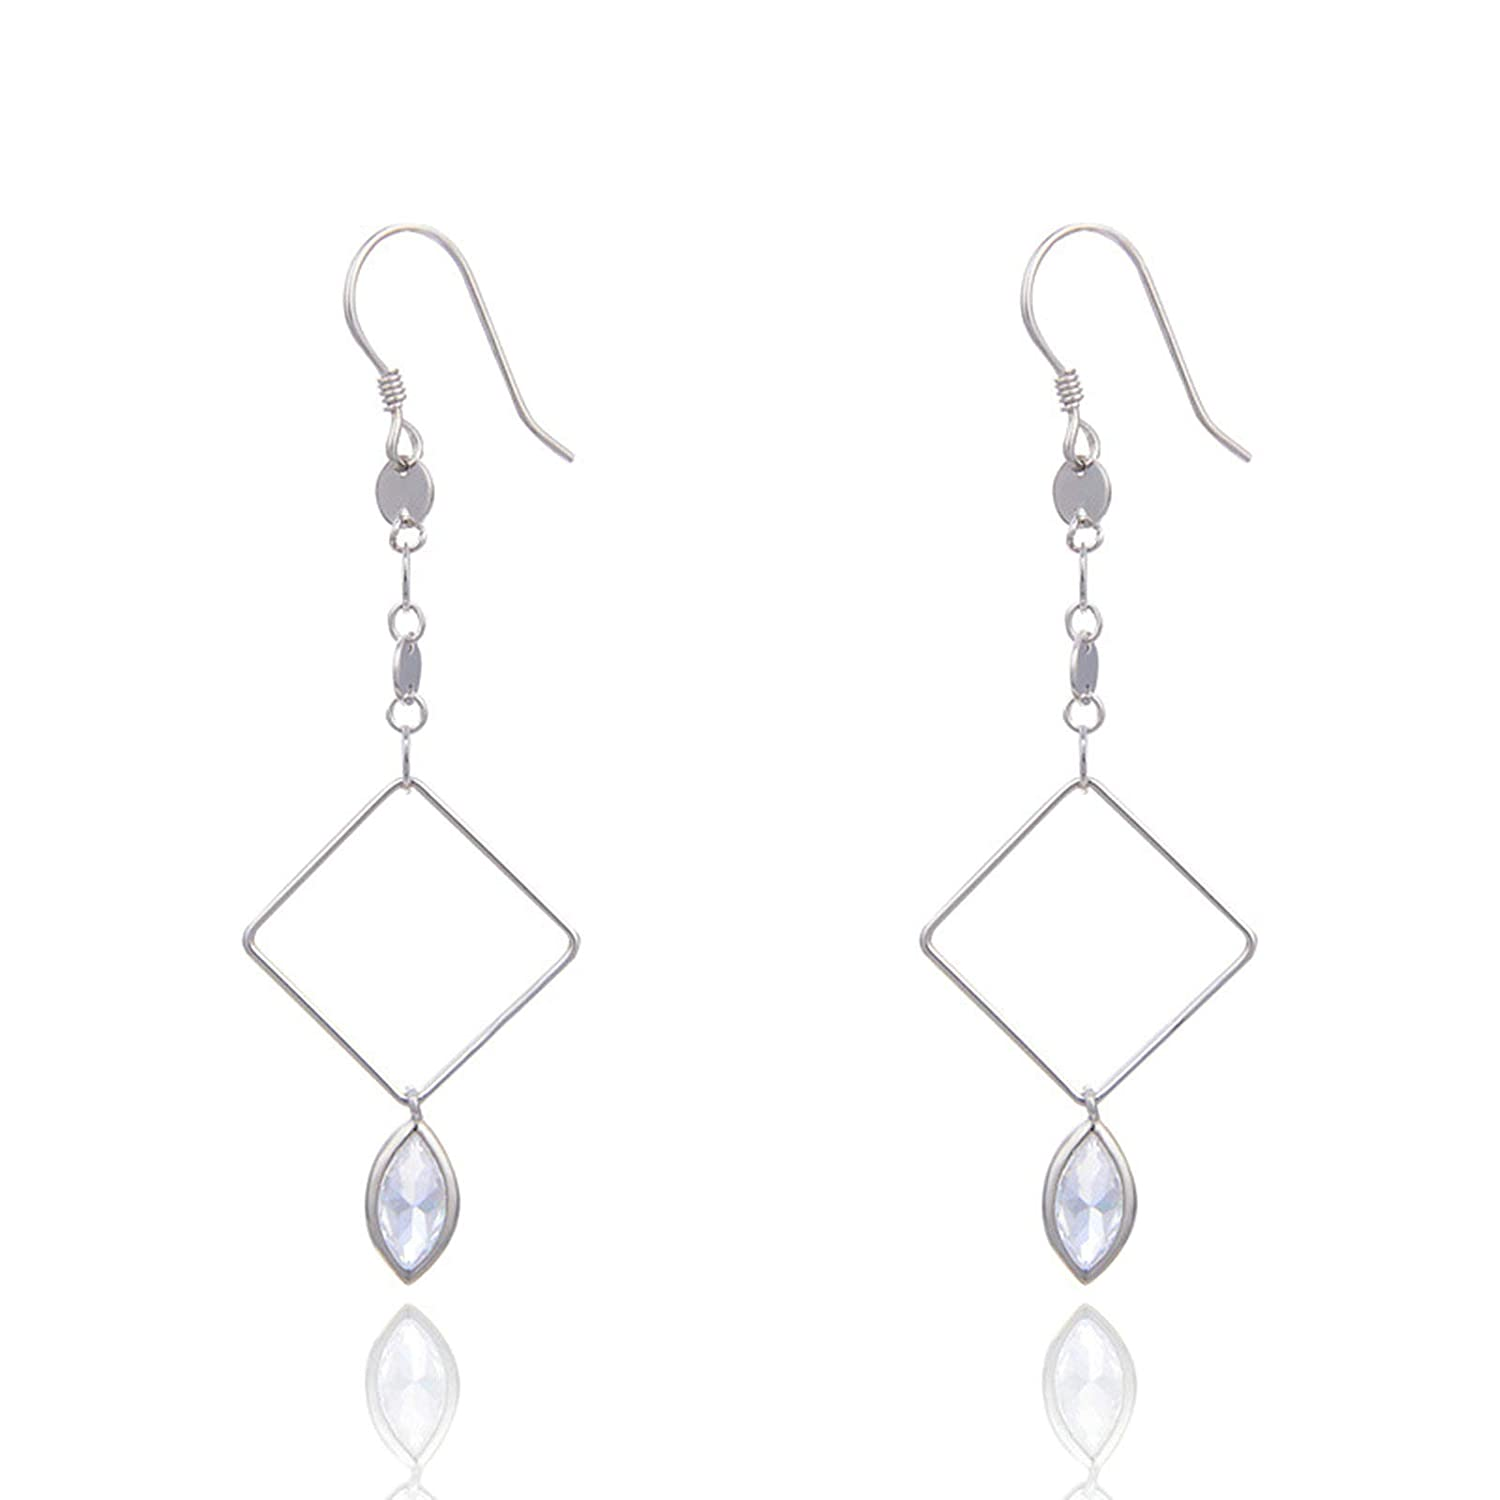 AmDxD Jewelry Earring for Girls Sterling Silver Silver Hollow Square Zirconia Dangle Earrings for Women Fashion 59.7x20MM